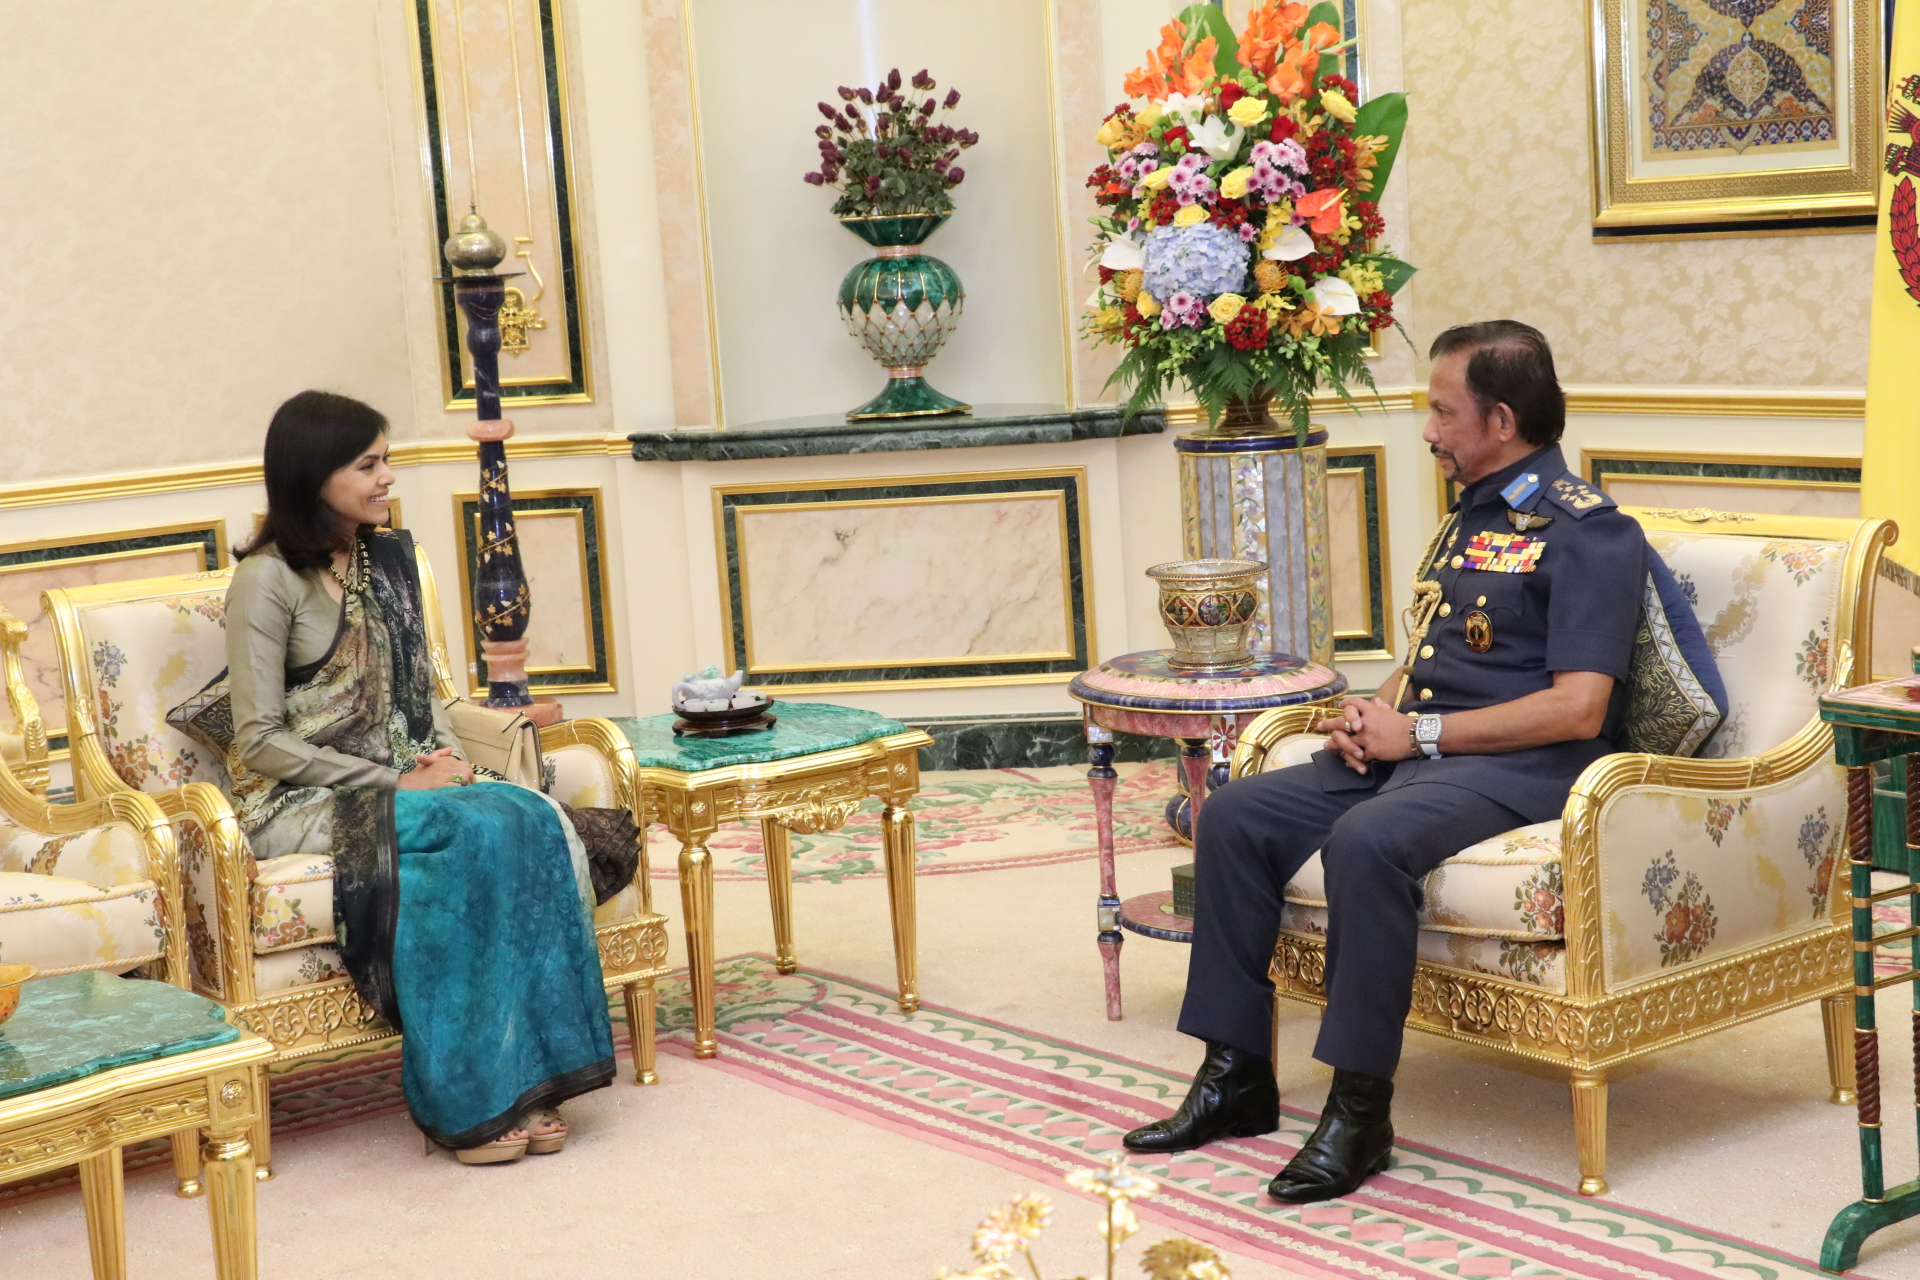 HIS MAJESTY THE SULTAN AND YANG DI-PERTUAN OF BRUNEI DARUSSALAM RECEIVES IN AUDIENCE THE OUTGOING HIGH COMMISSIONER OF THE REPUBLIC OF INDIA TO BRUNEI DARUSSALAM